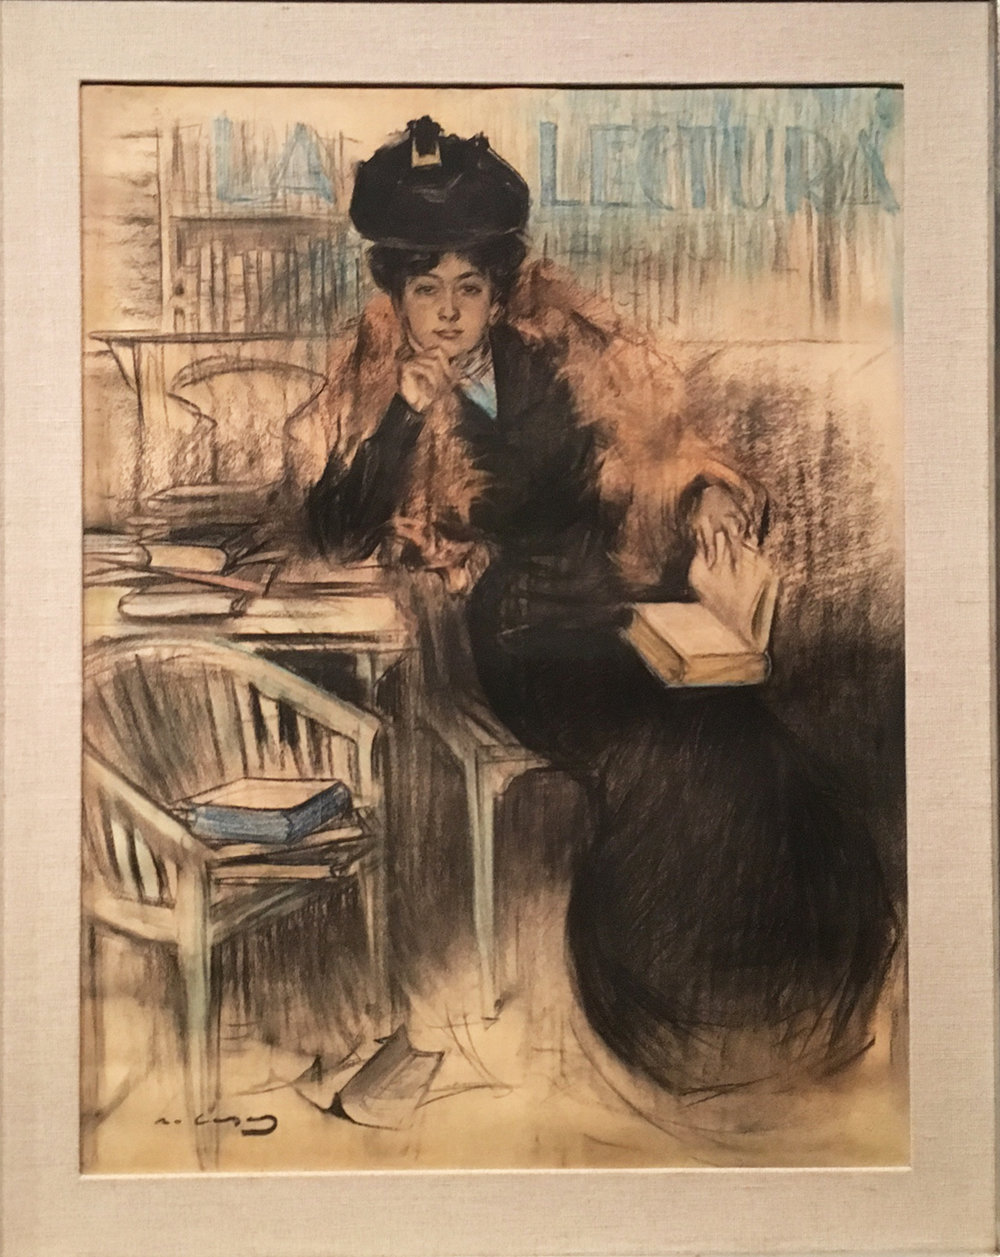 La Lecture, pastel, charcoal and pencil on paper, 1900-1903, Ramon Casas